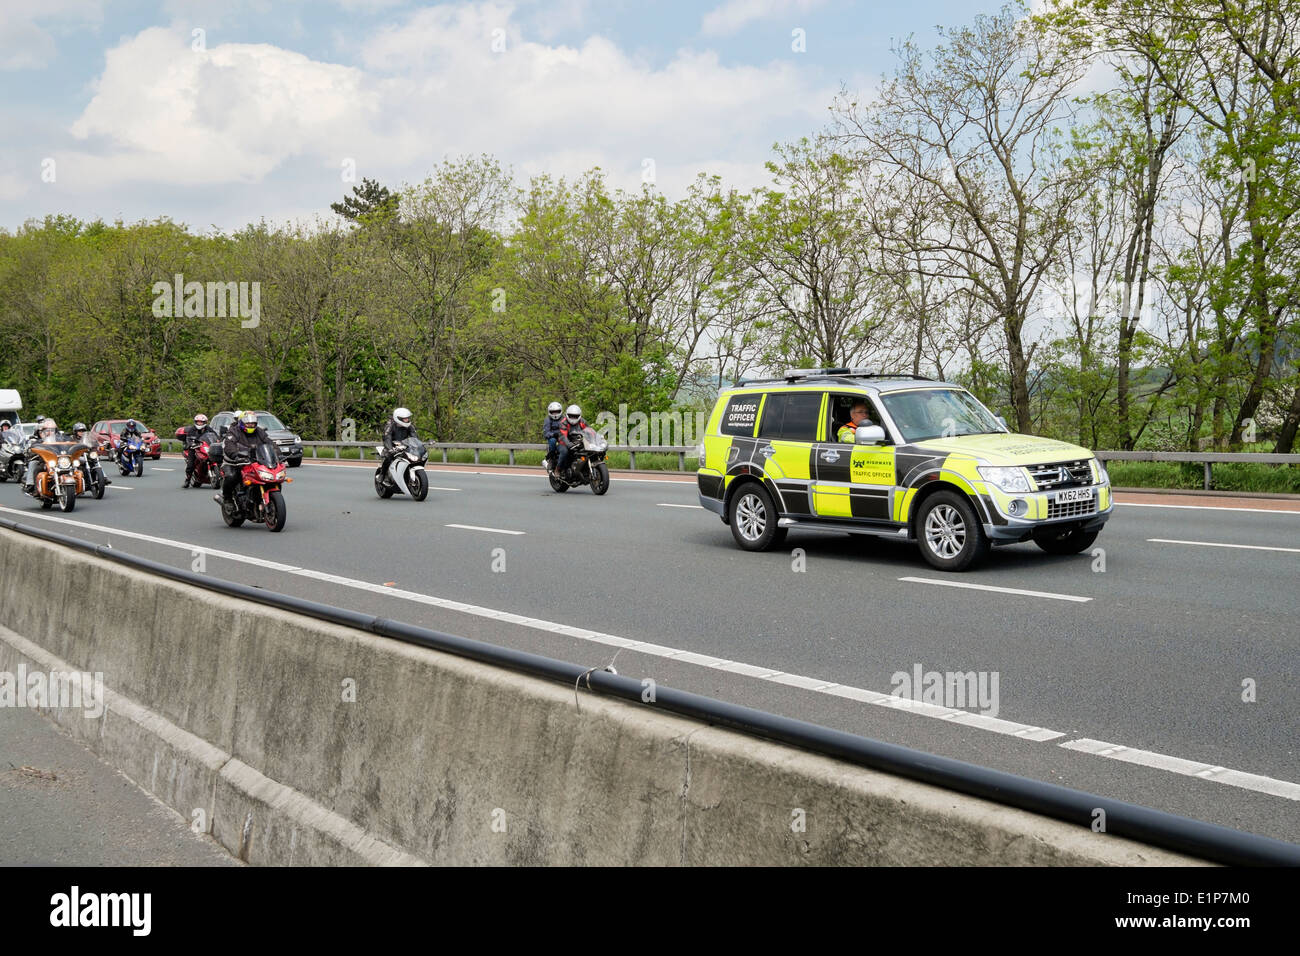 Rolling road block with a Highways Agency vehicle leading motorcycles on M6 motorway following closure. Lancashire, England, UK, Britain - Stock Image